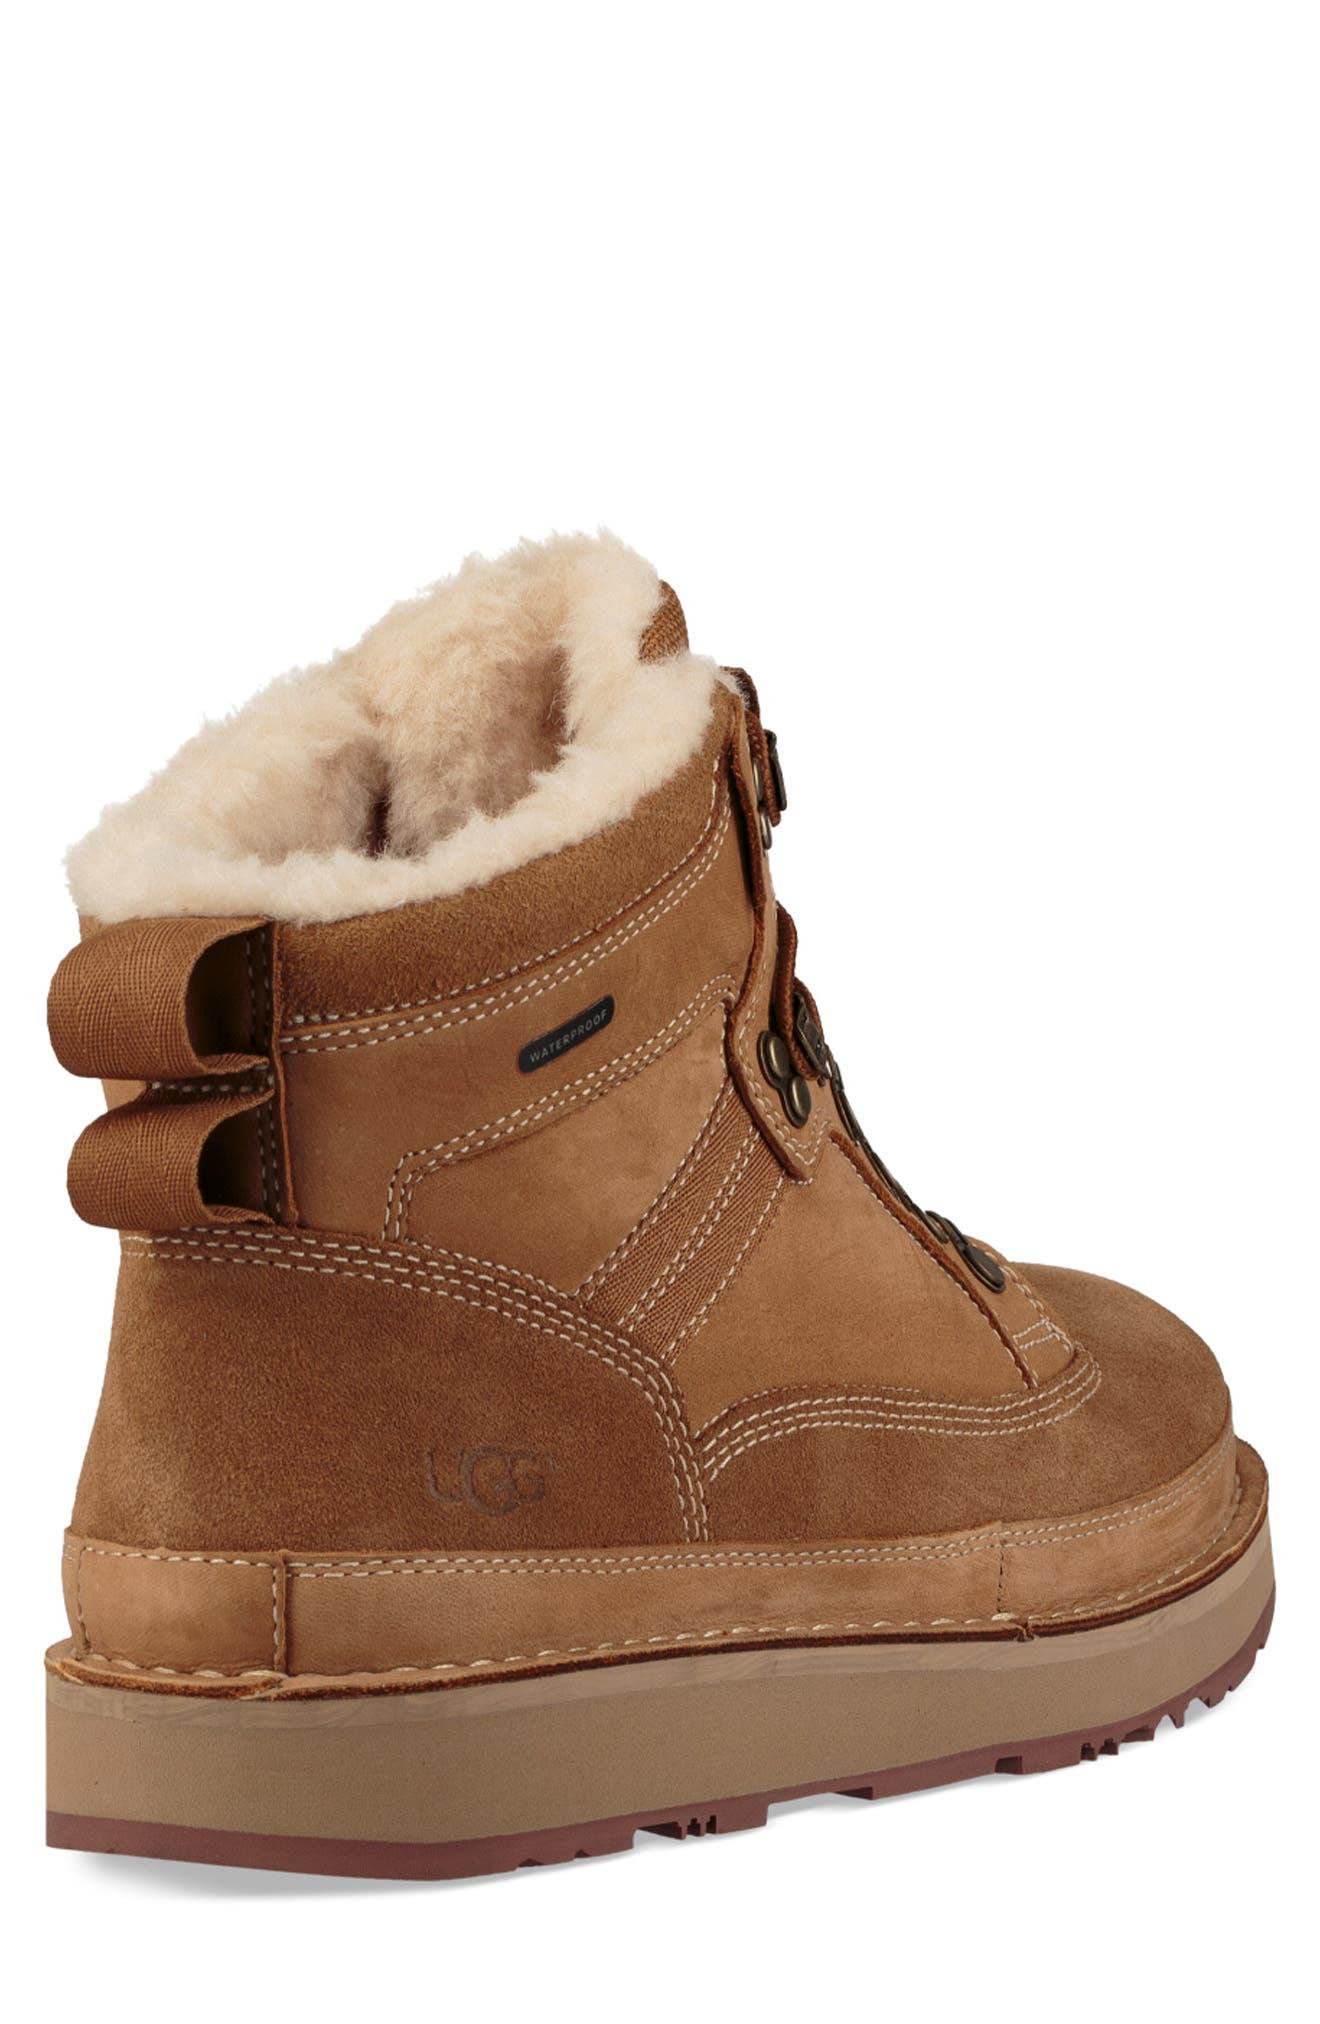 Avalanche Hiker Waterproof Boot,                             Alternate thumbnail 2, color,                             CHESTNUT